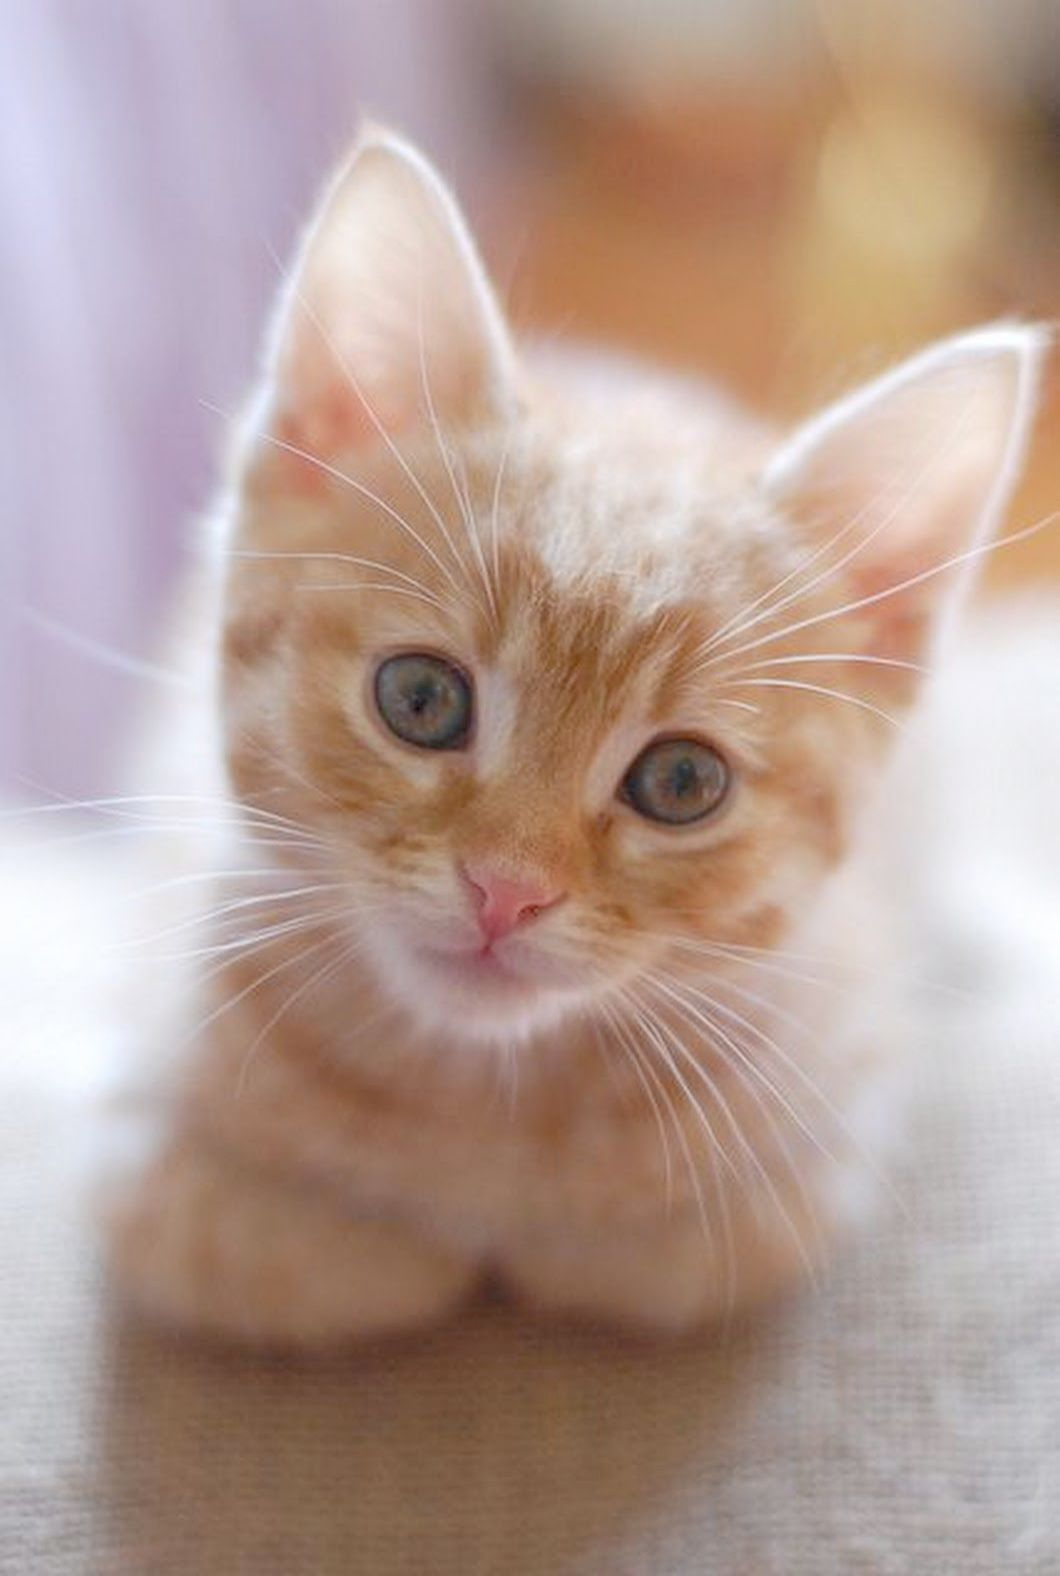 Cats Have Kittens At Cats And Kittens Perth Kittens Cutest Cats Tabby Kitten Orange